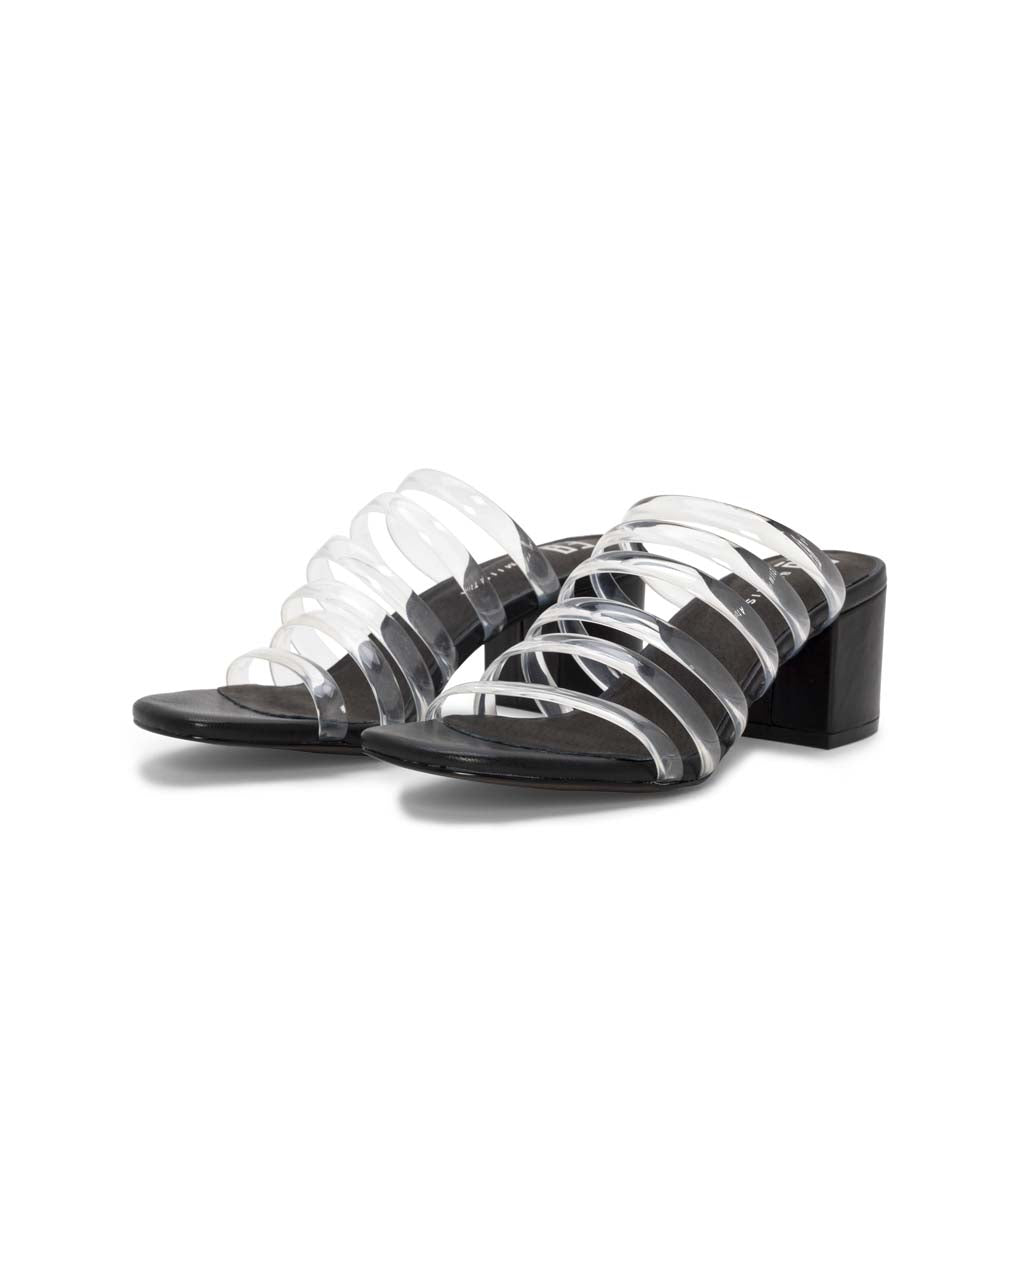 pair of sandals with clear skinny straps and black heel